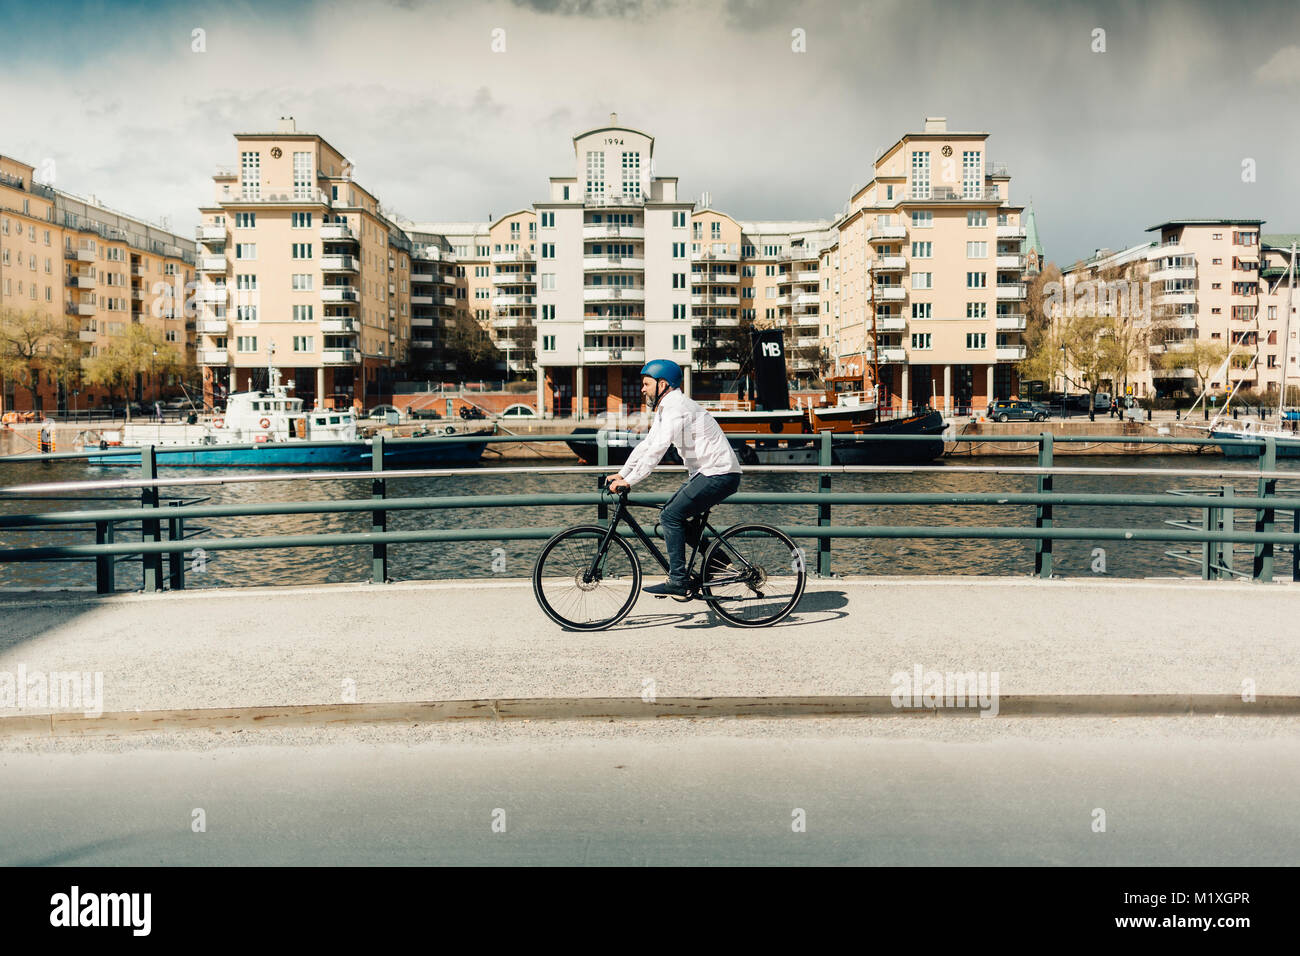 Man bicycling on street in Stockholm, Sweden - Stock Image